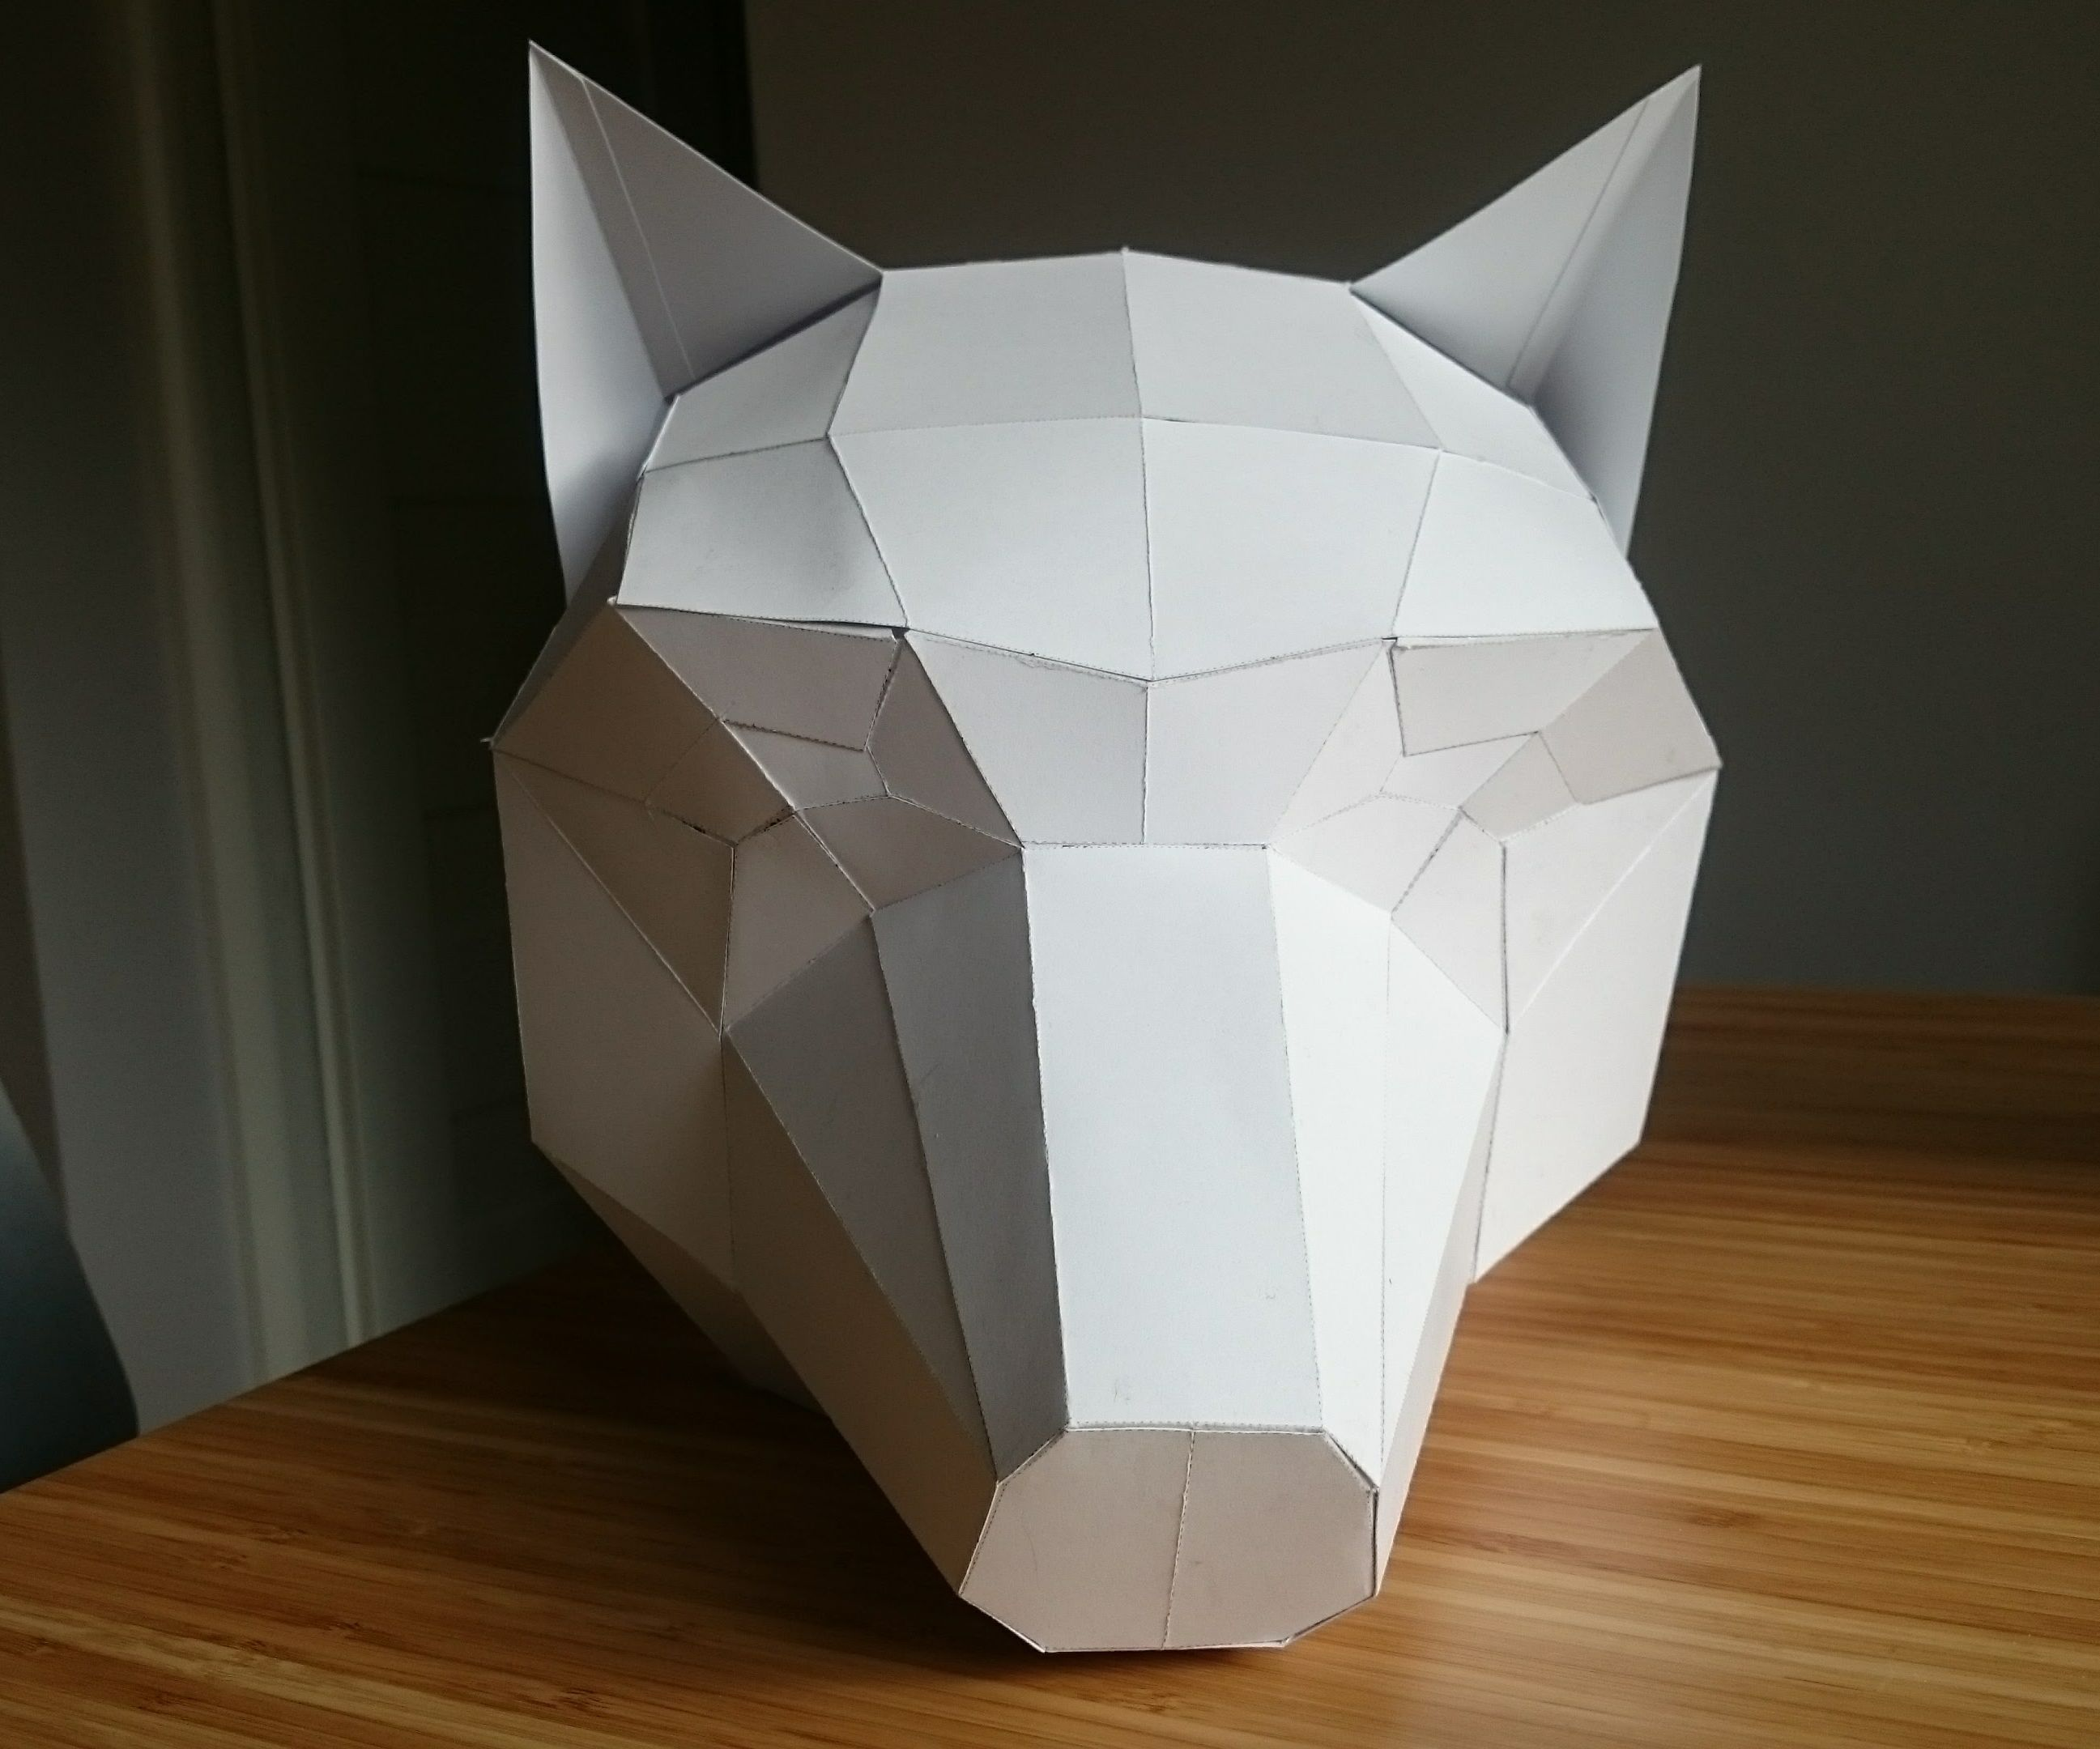 Papercraft Low Poly Wolf Mask: 6 Steps (with Pictures)